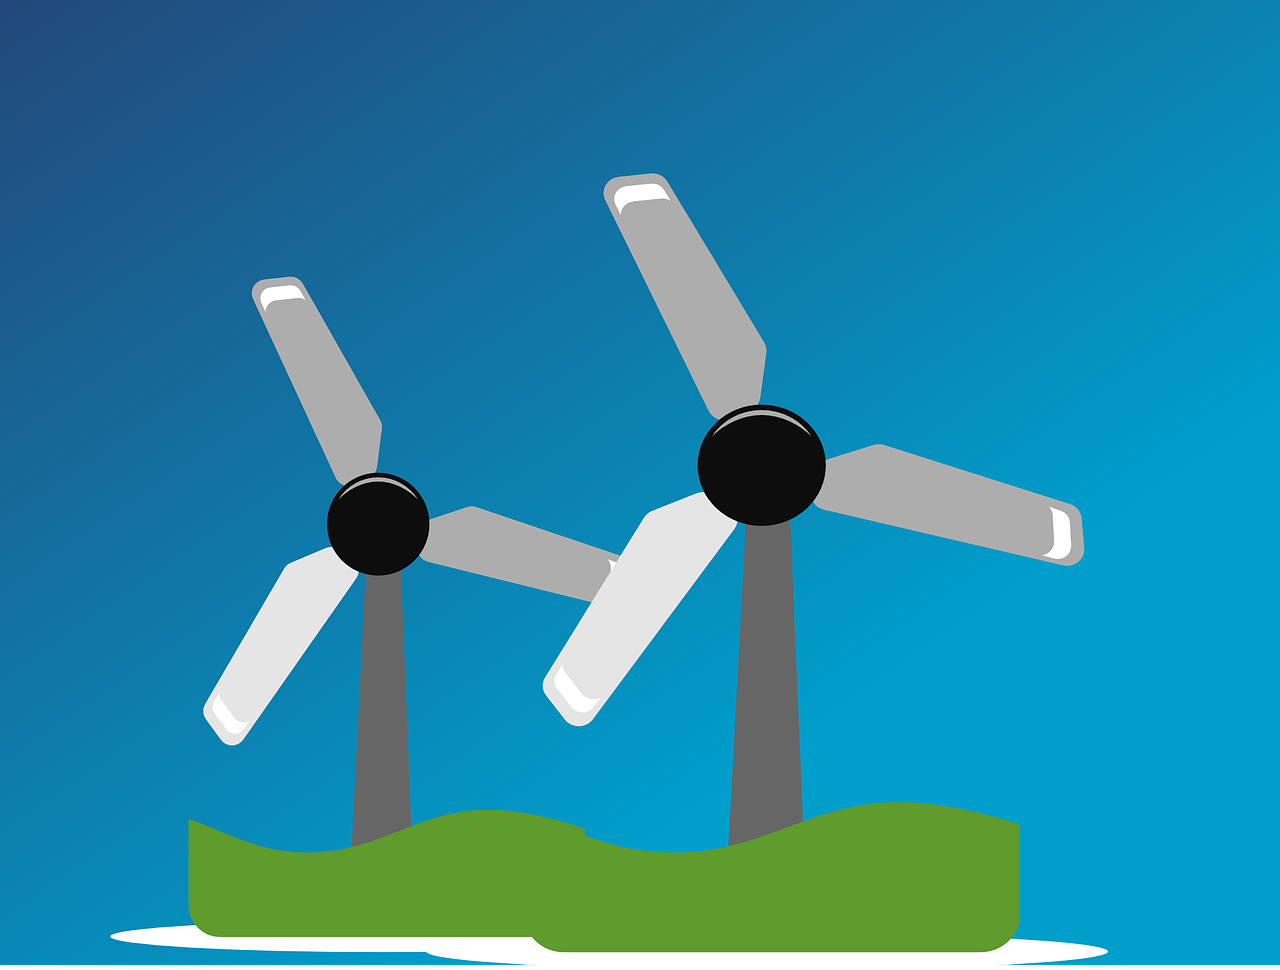 £100m Initiative to Help UK Firms Capitalise on Offshore Wind Market